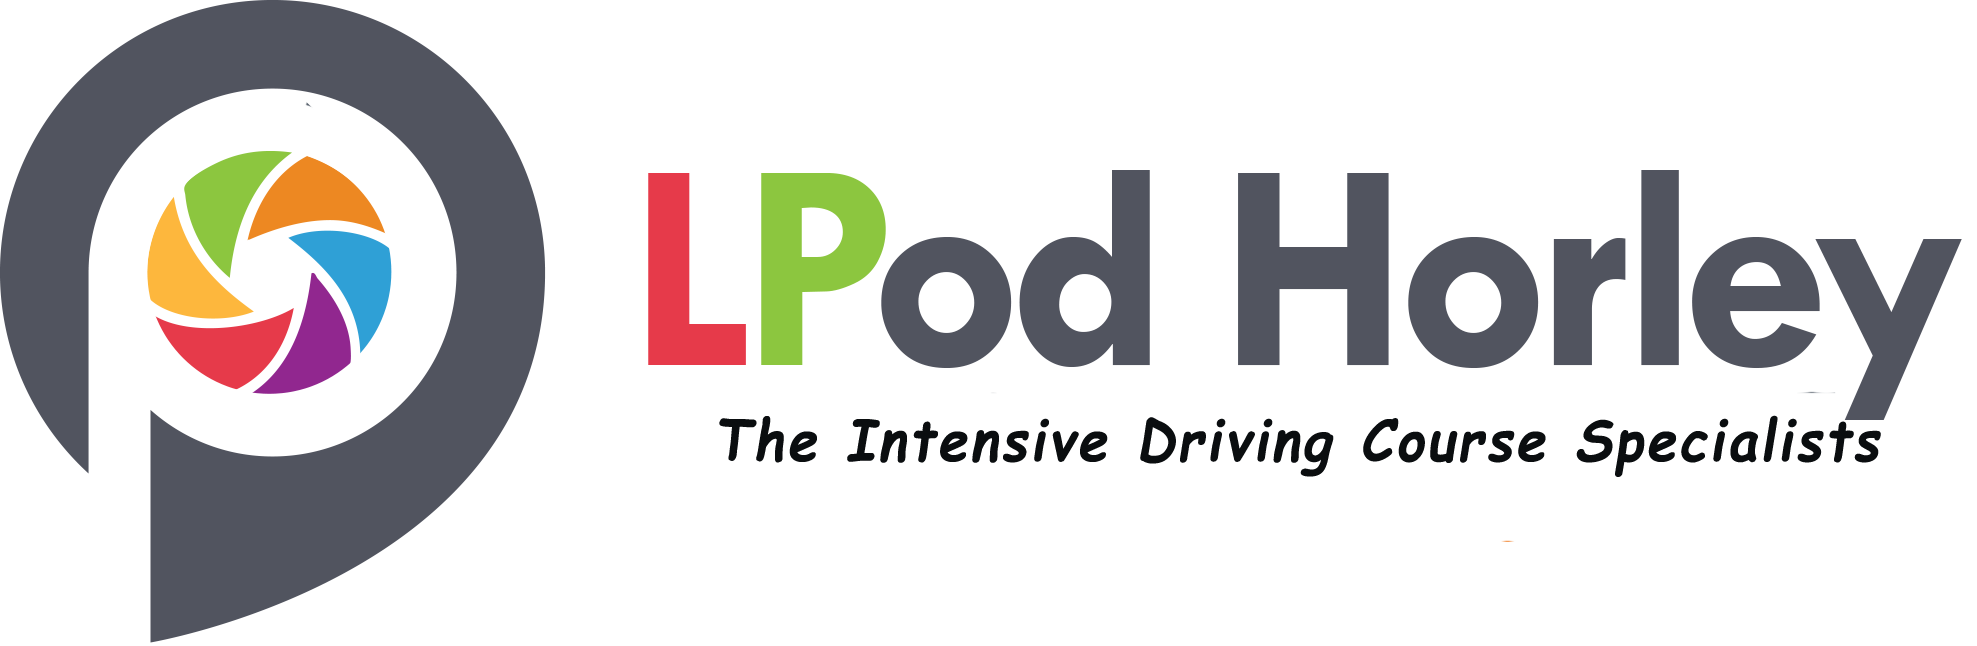 intensive driving courses Horley